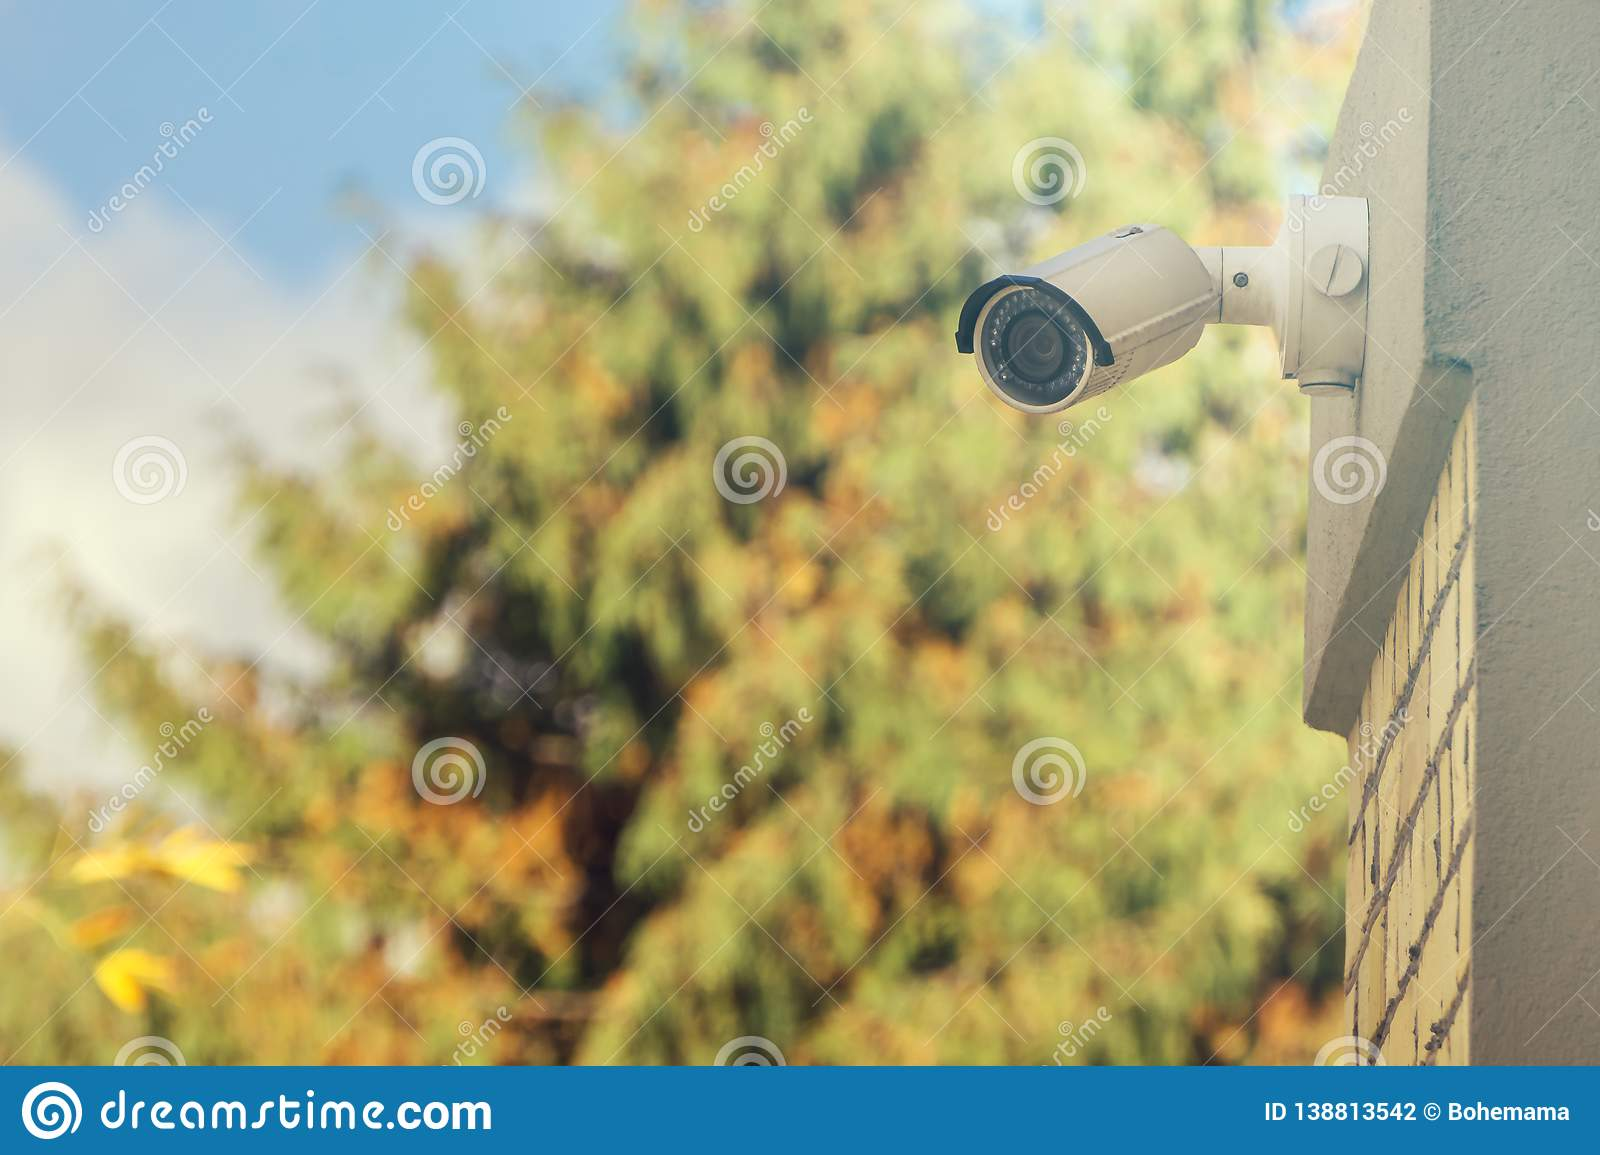 Modern CCTV camera on building wall, foliage background